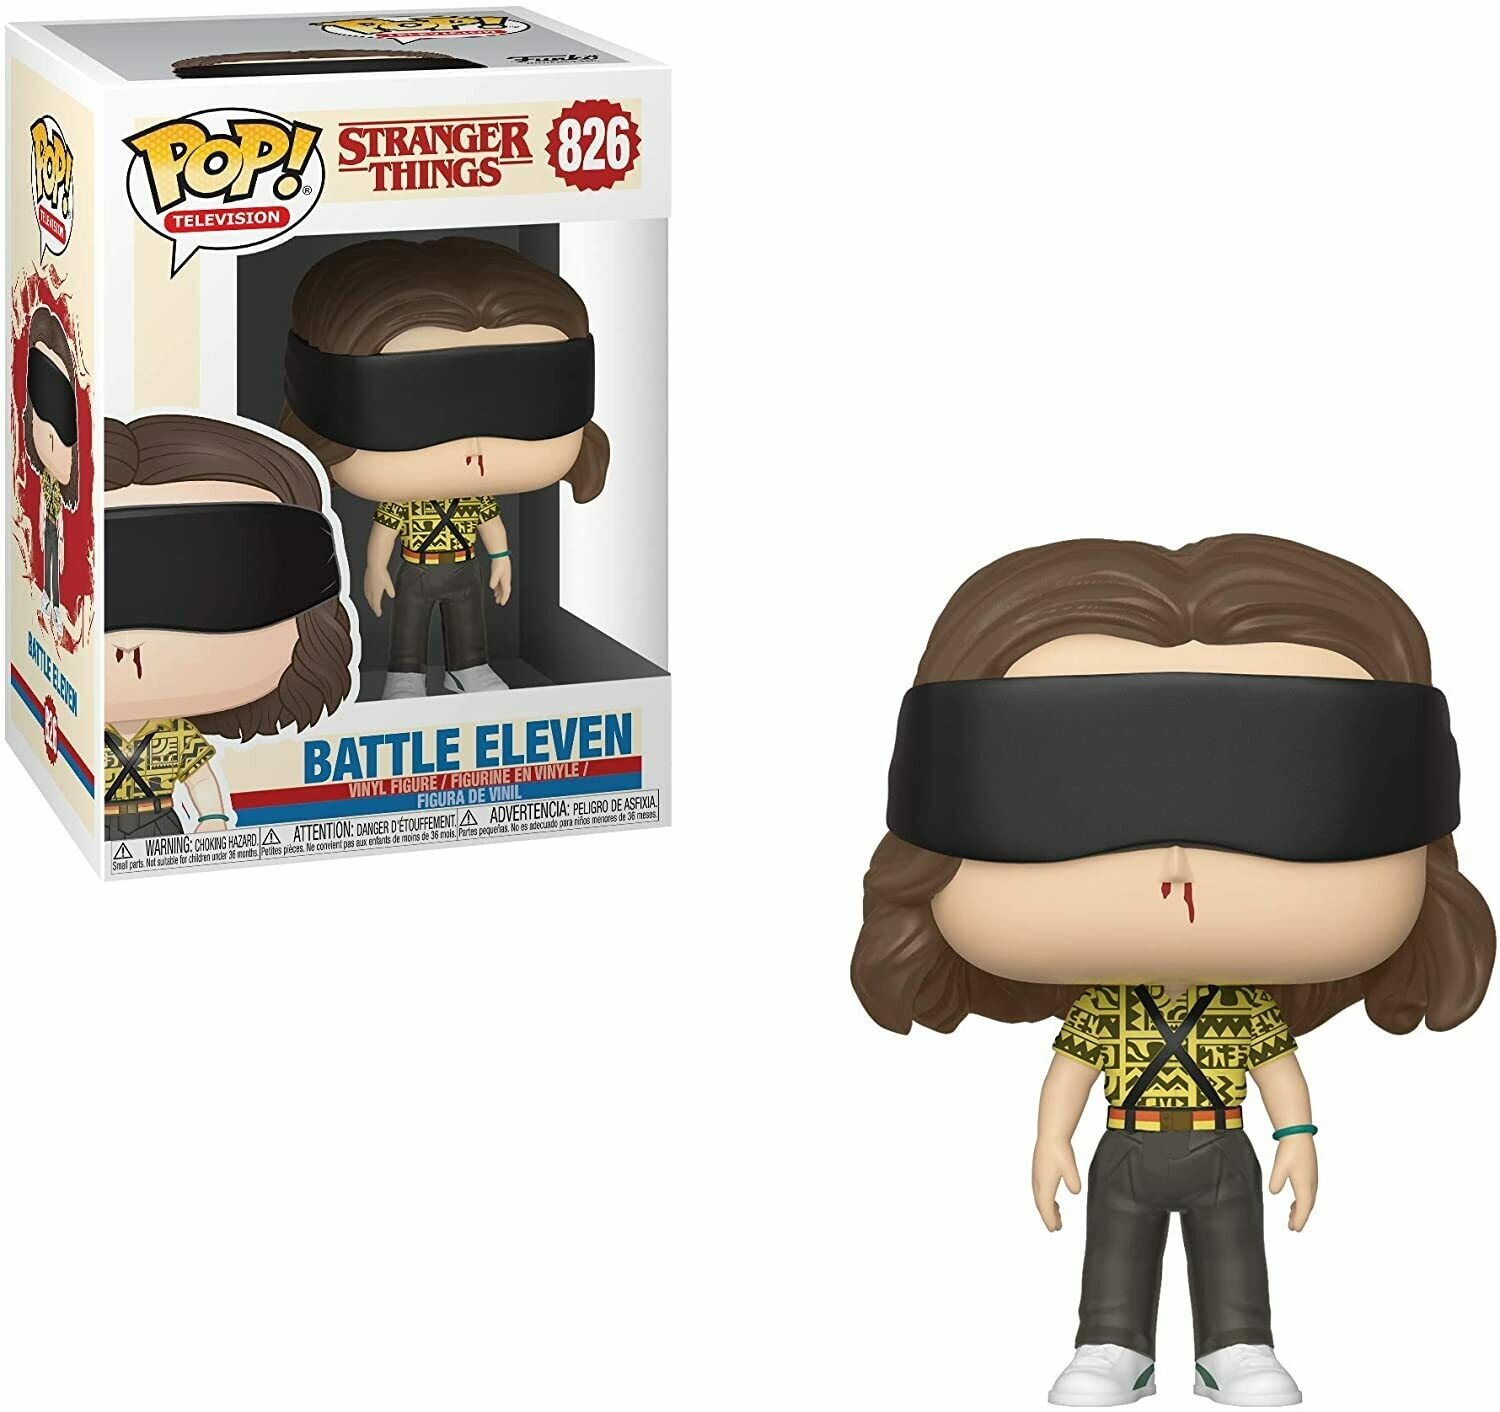 Funko Pop! Battle Eleven Stranger Things